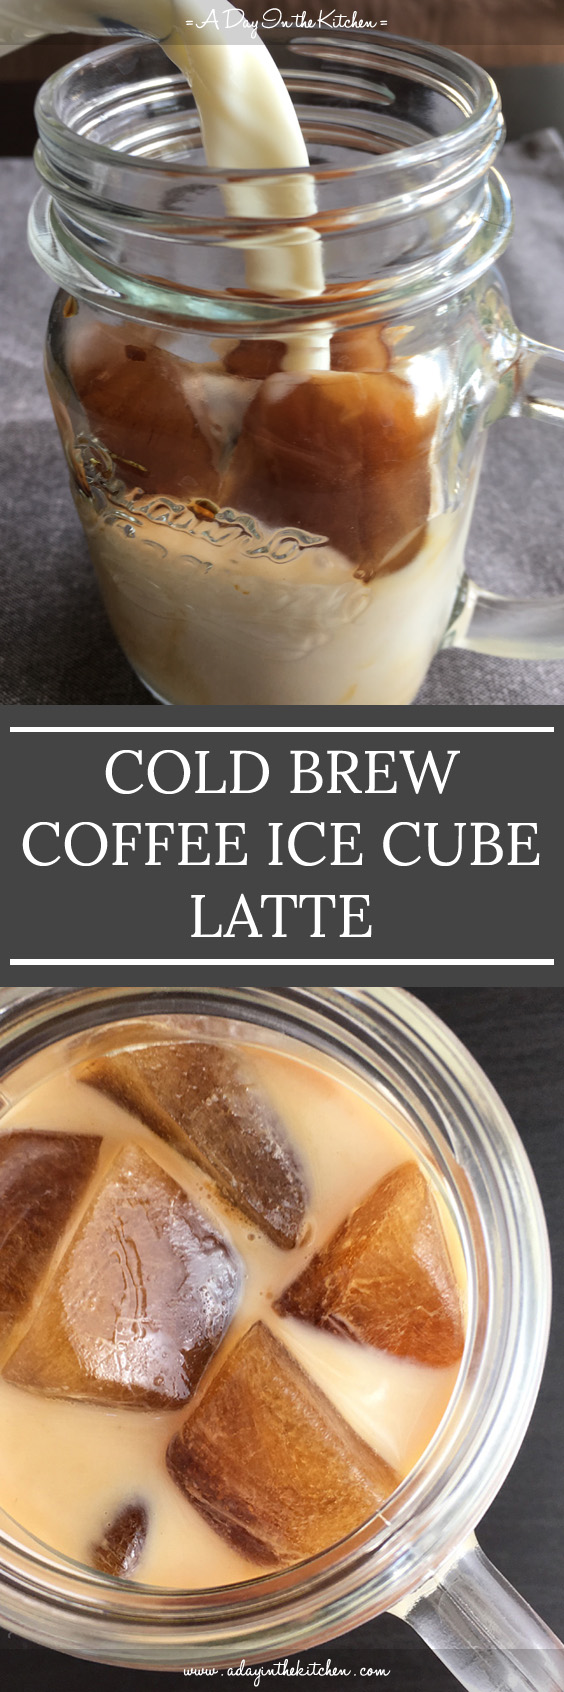 Want iced coffee that doesn't get watered down as it nears the bottom of the glass? Cold-Brewed Coffee Ice Cube Latte will become your favorite iced coffee! #coldbrew #coffee #latte #icedlatte #coffeecubes